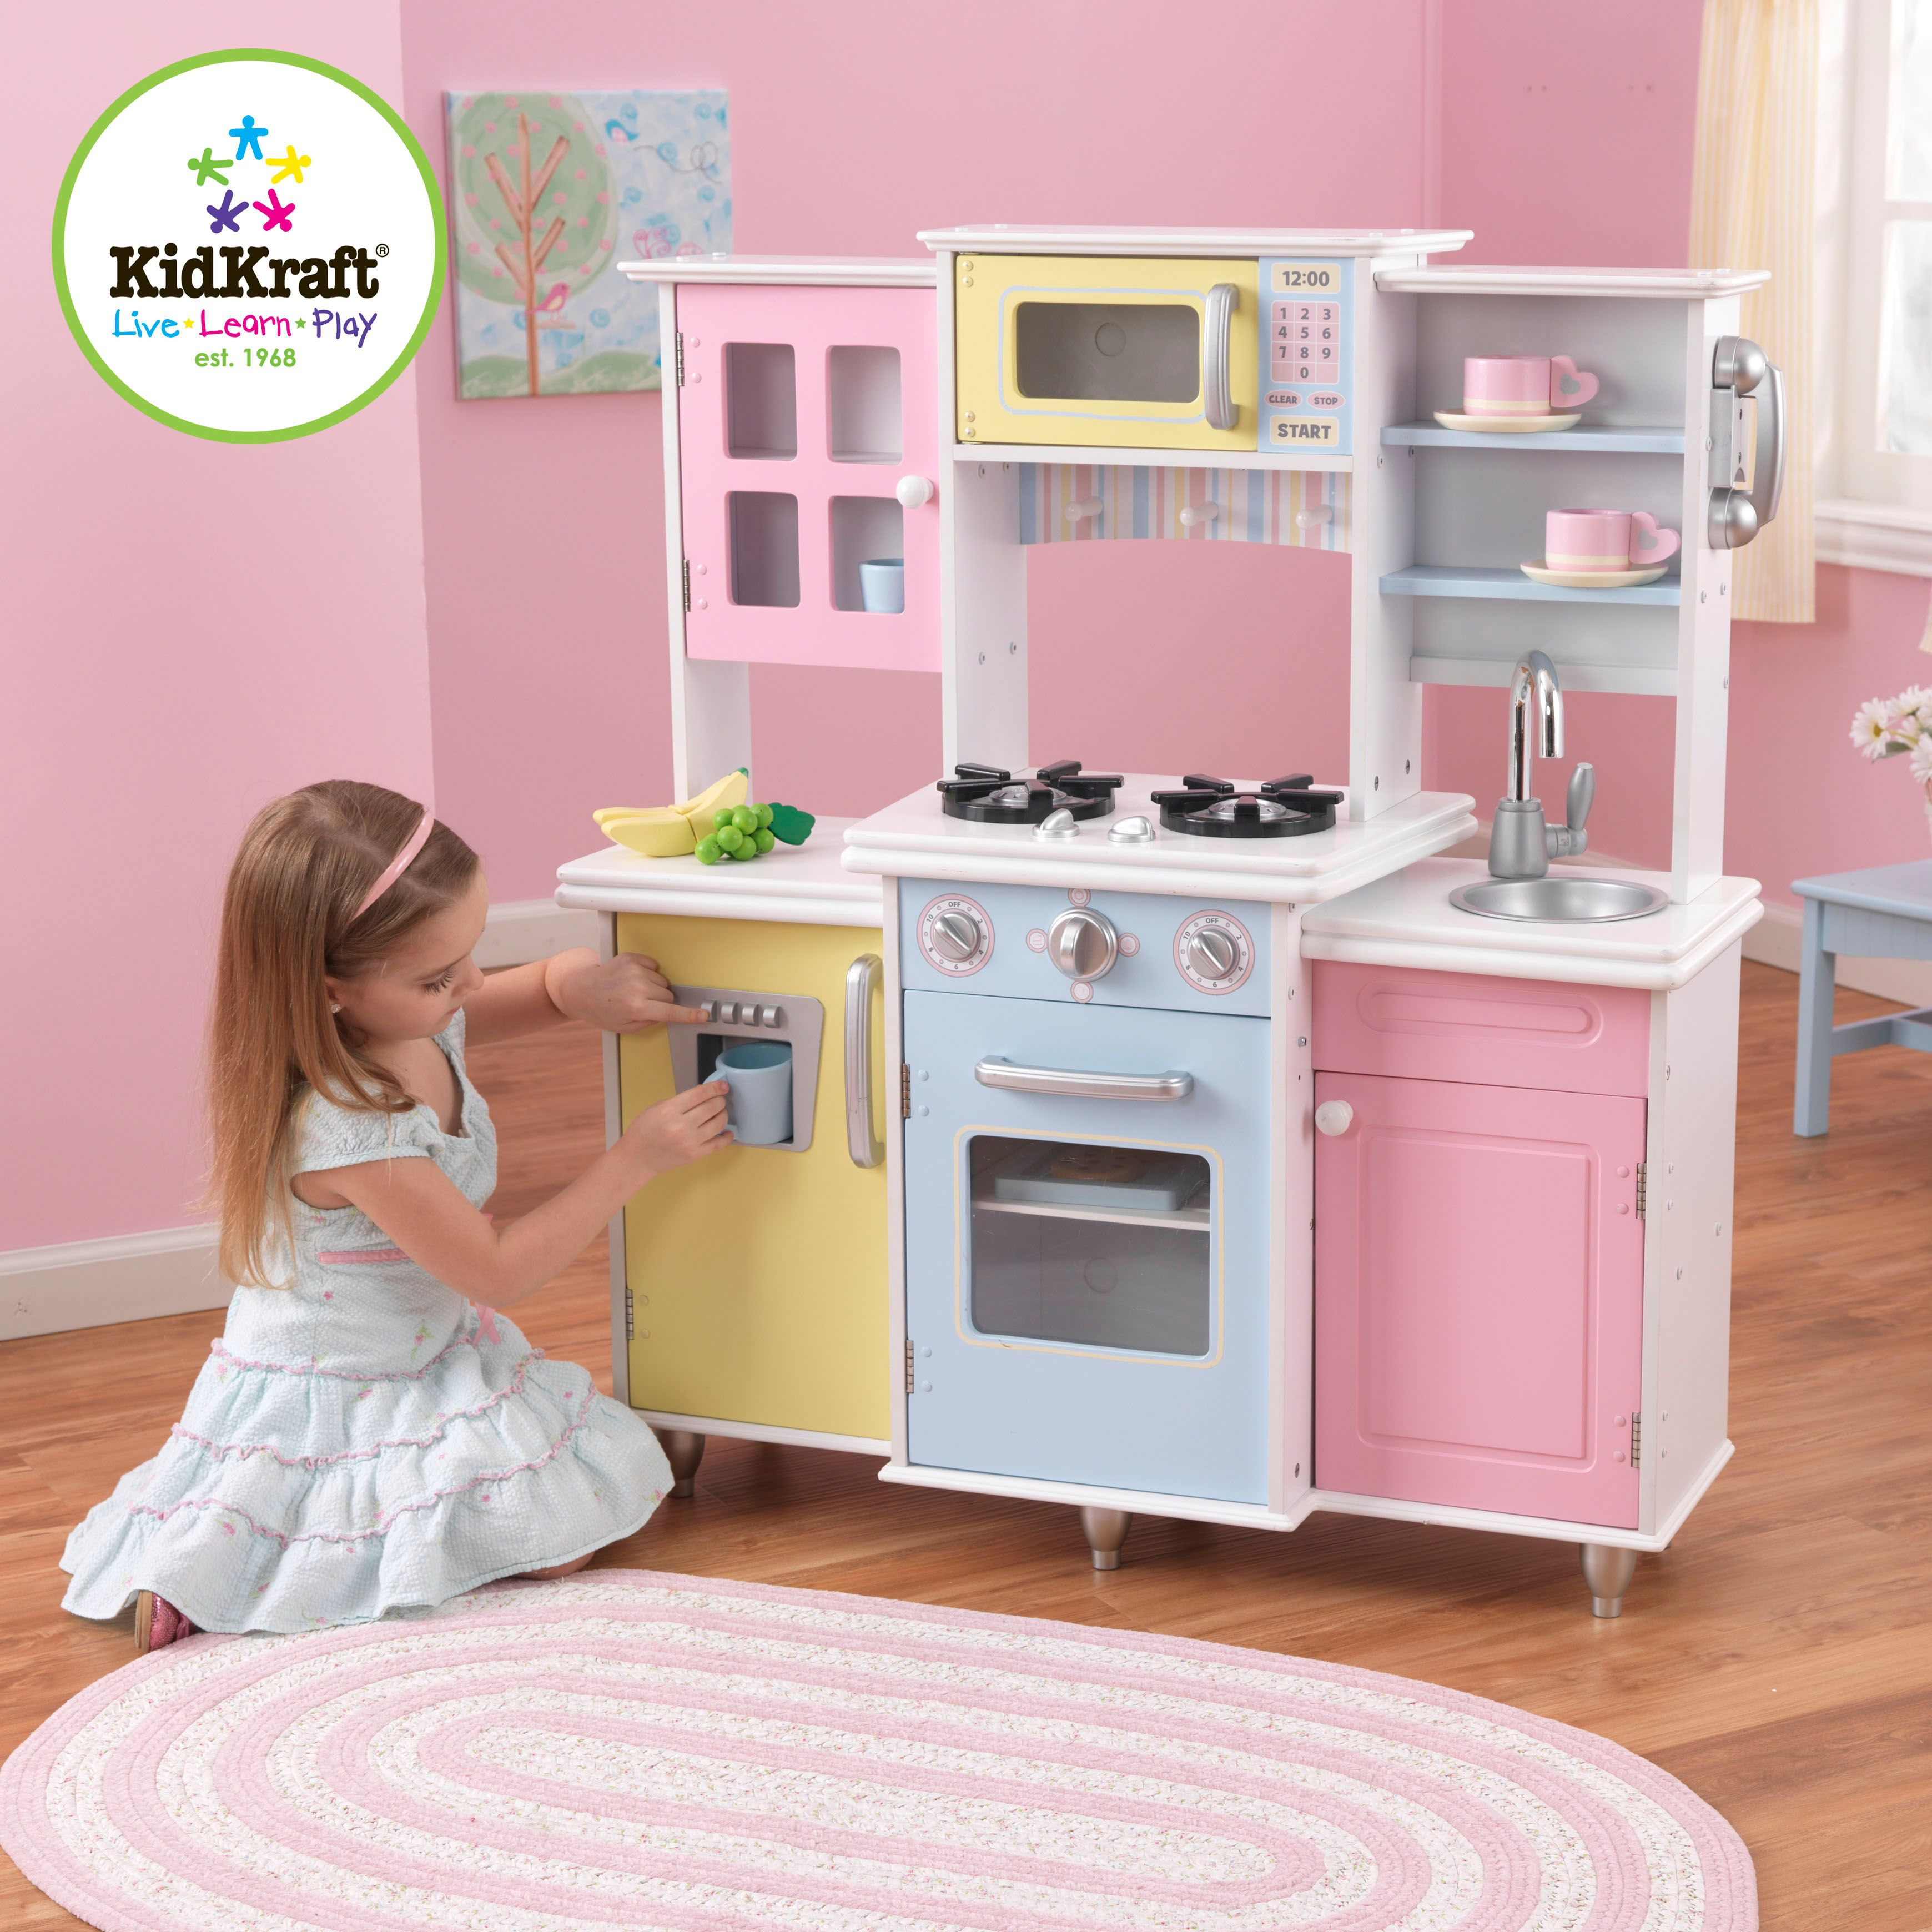 Kids Kitchen Set   Kidkraft Master Cooku0027s Kitchen For Kids